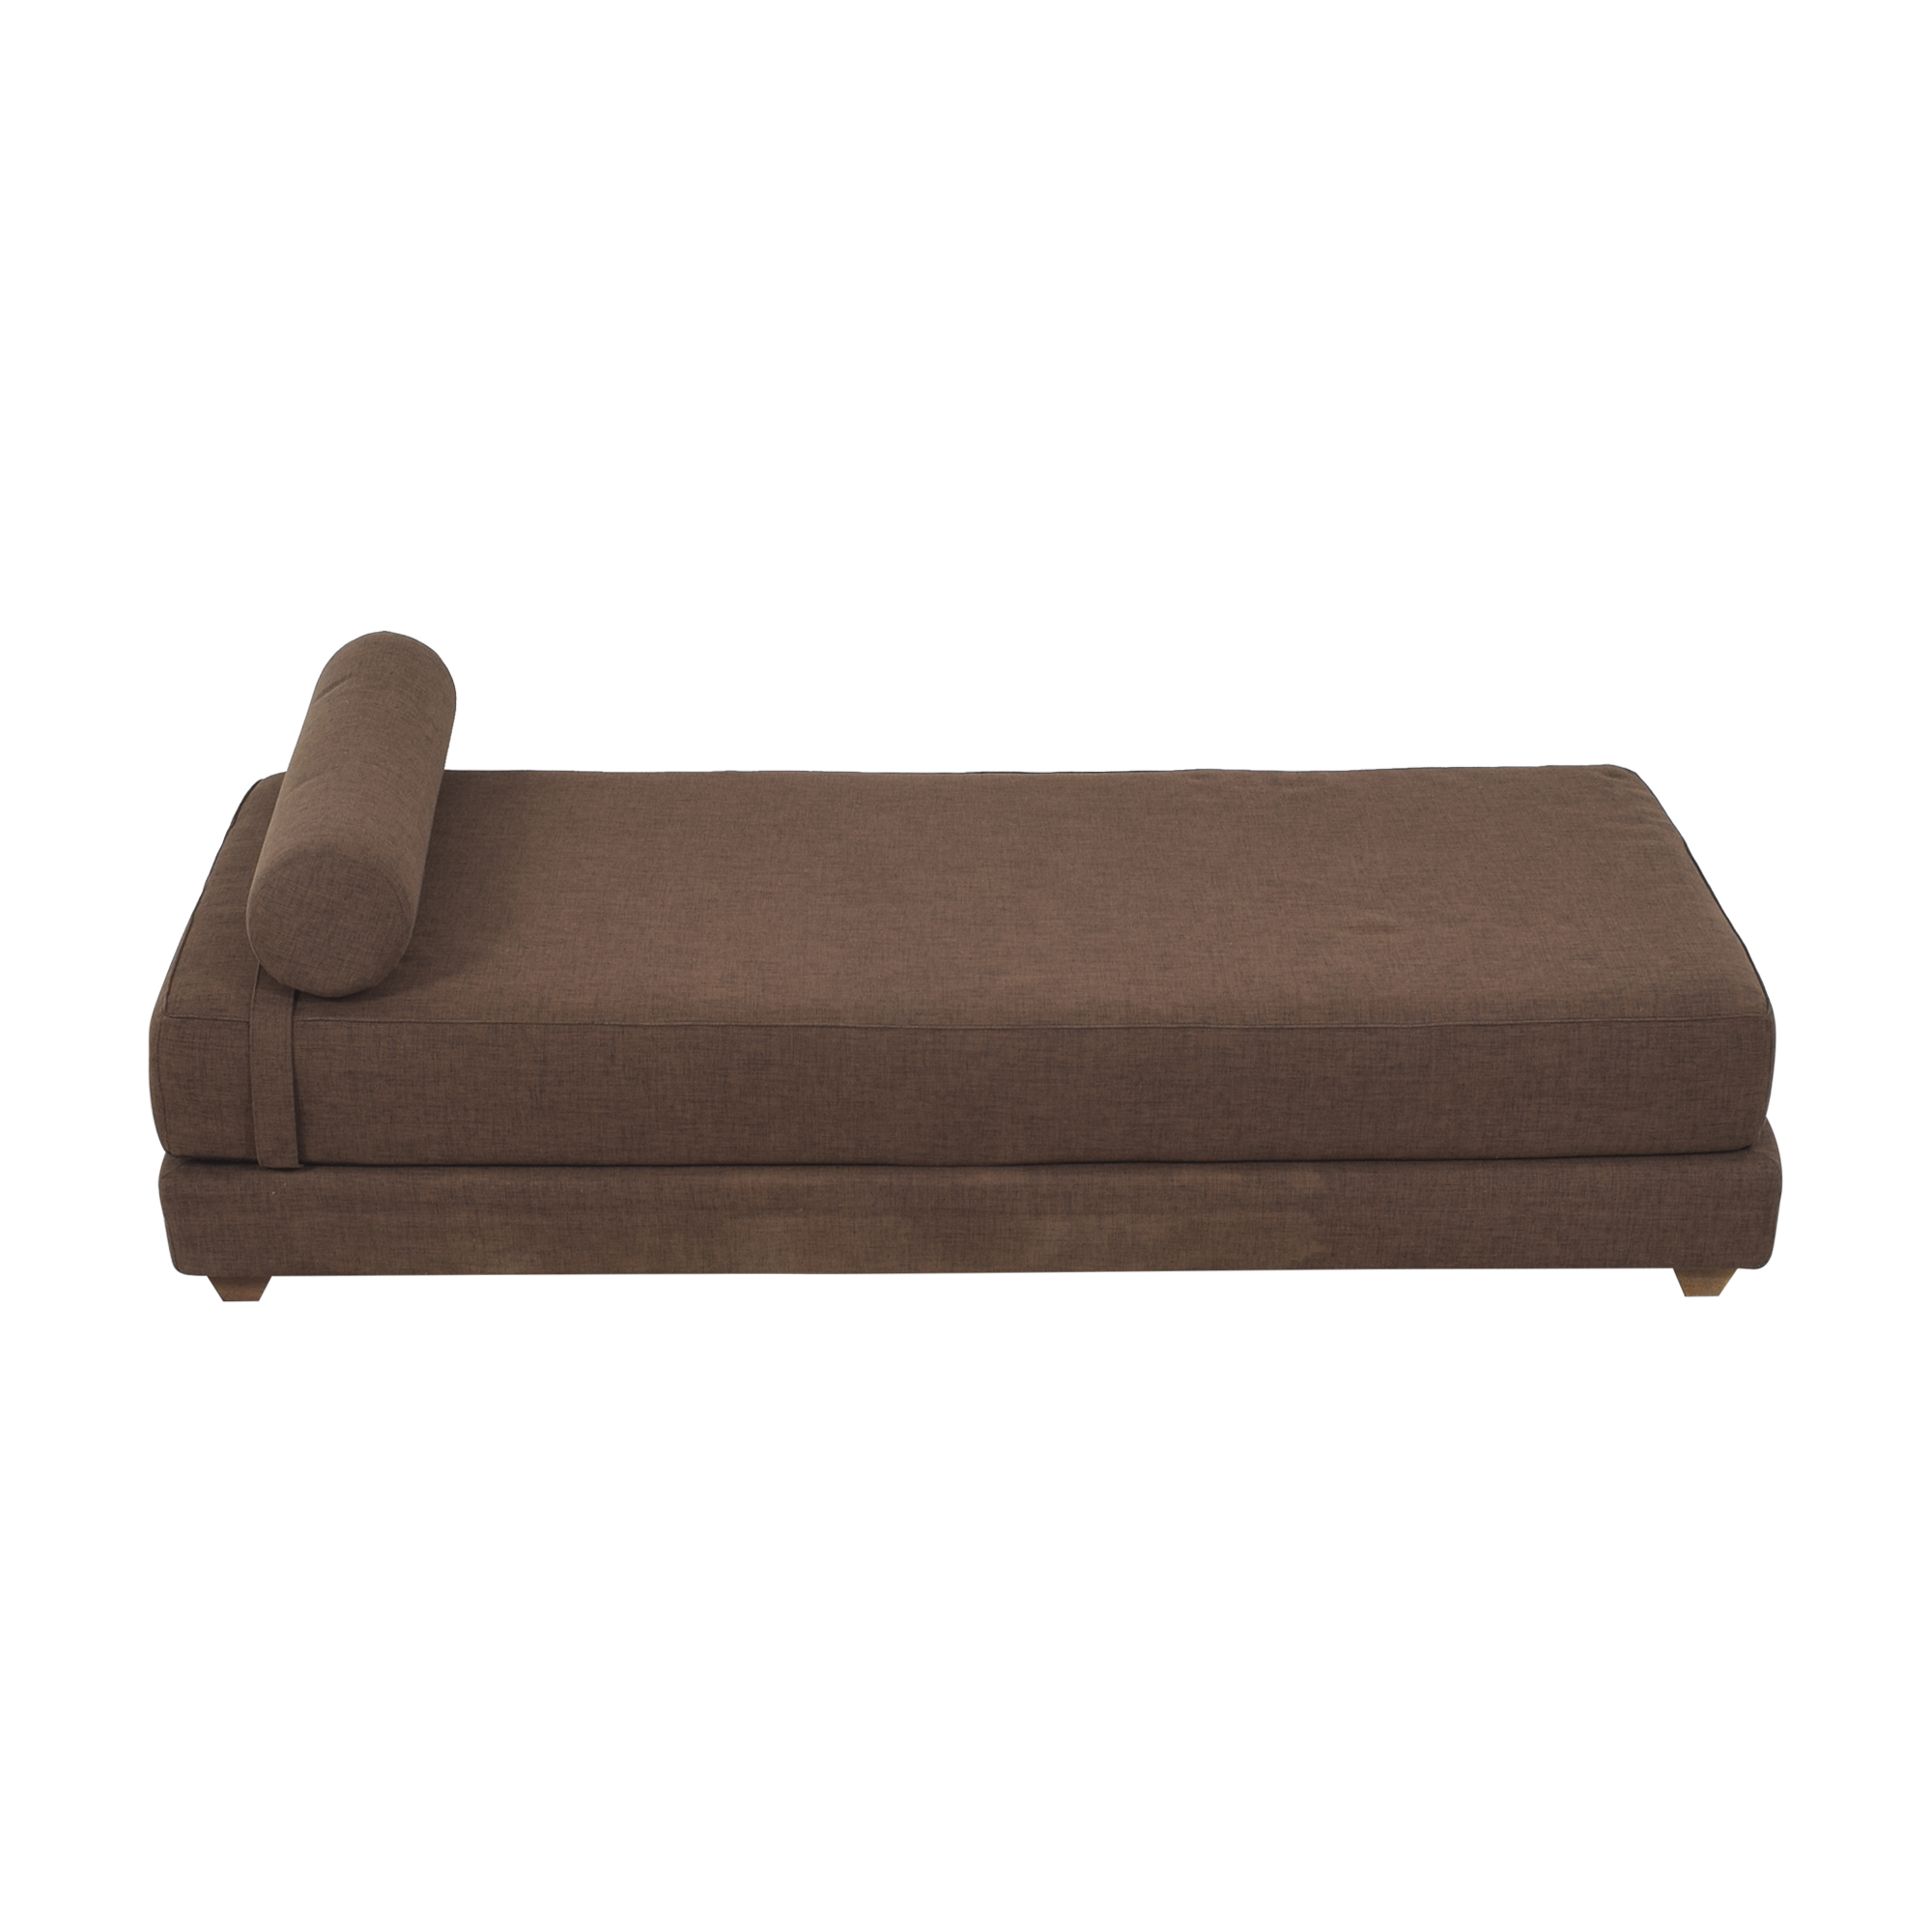 CB2 CB2 Lubi Sleeper Daybed Chaises